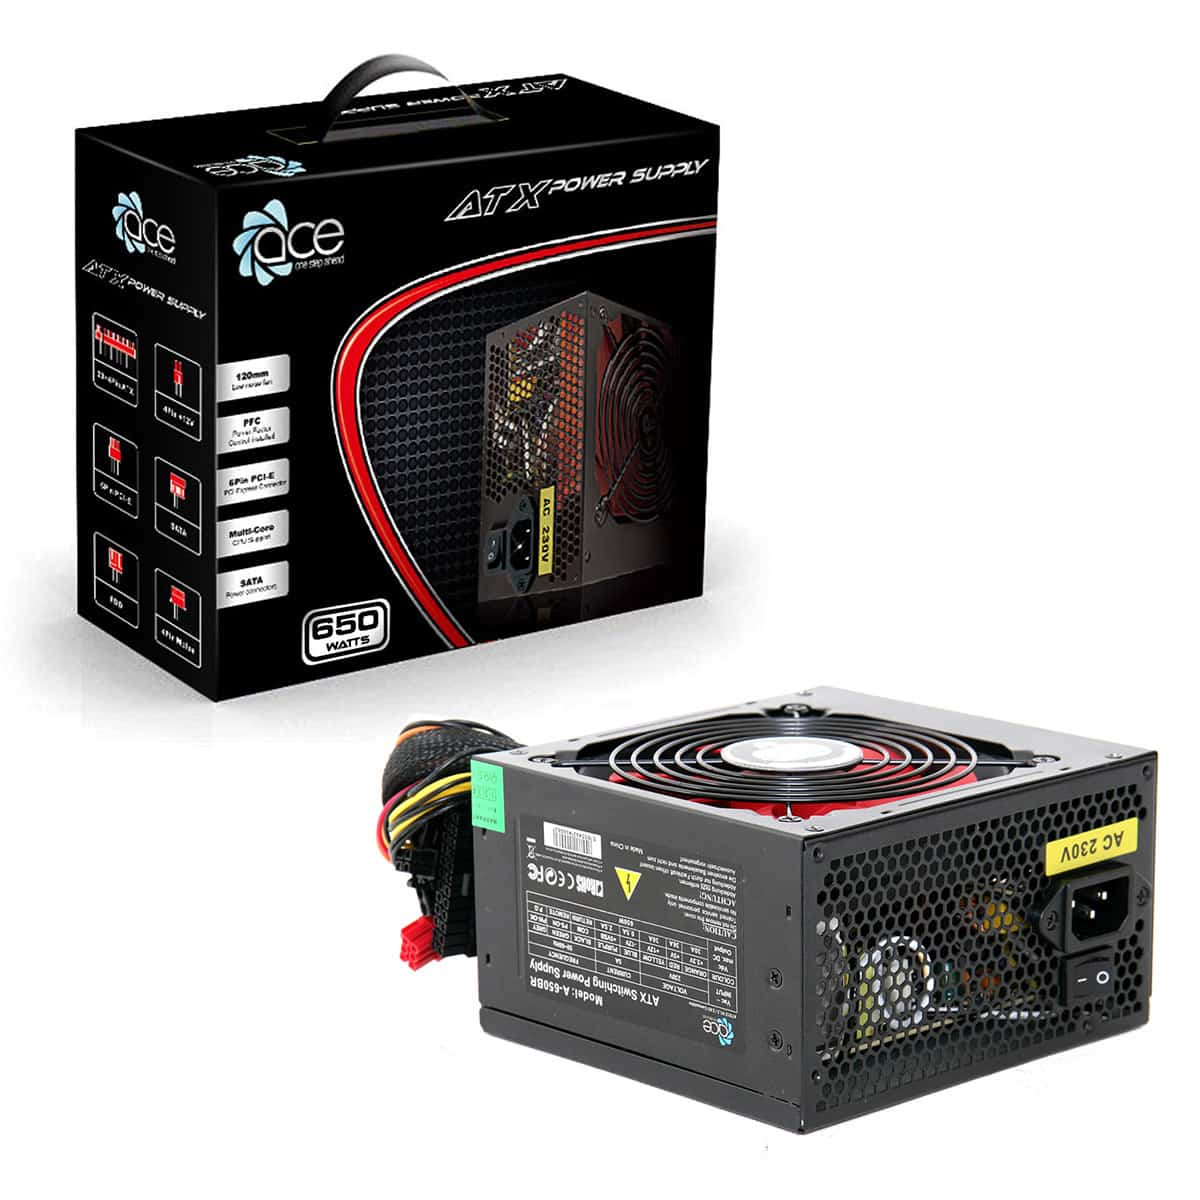 Ace 650w Black PSU 12cm Red Fan PFC